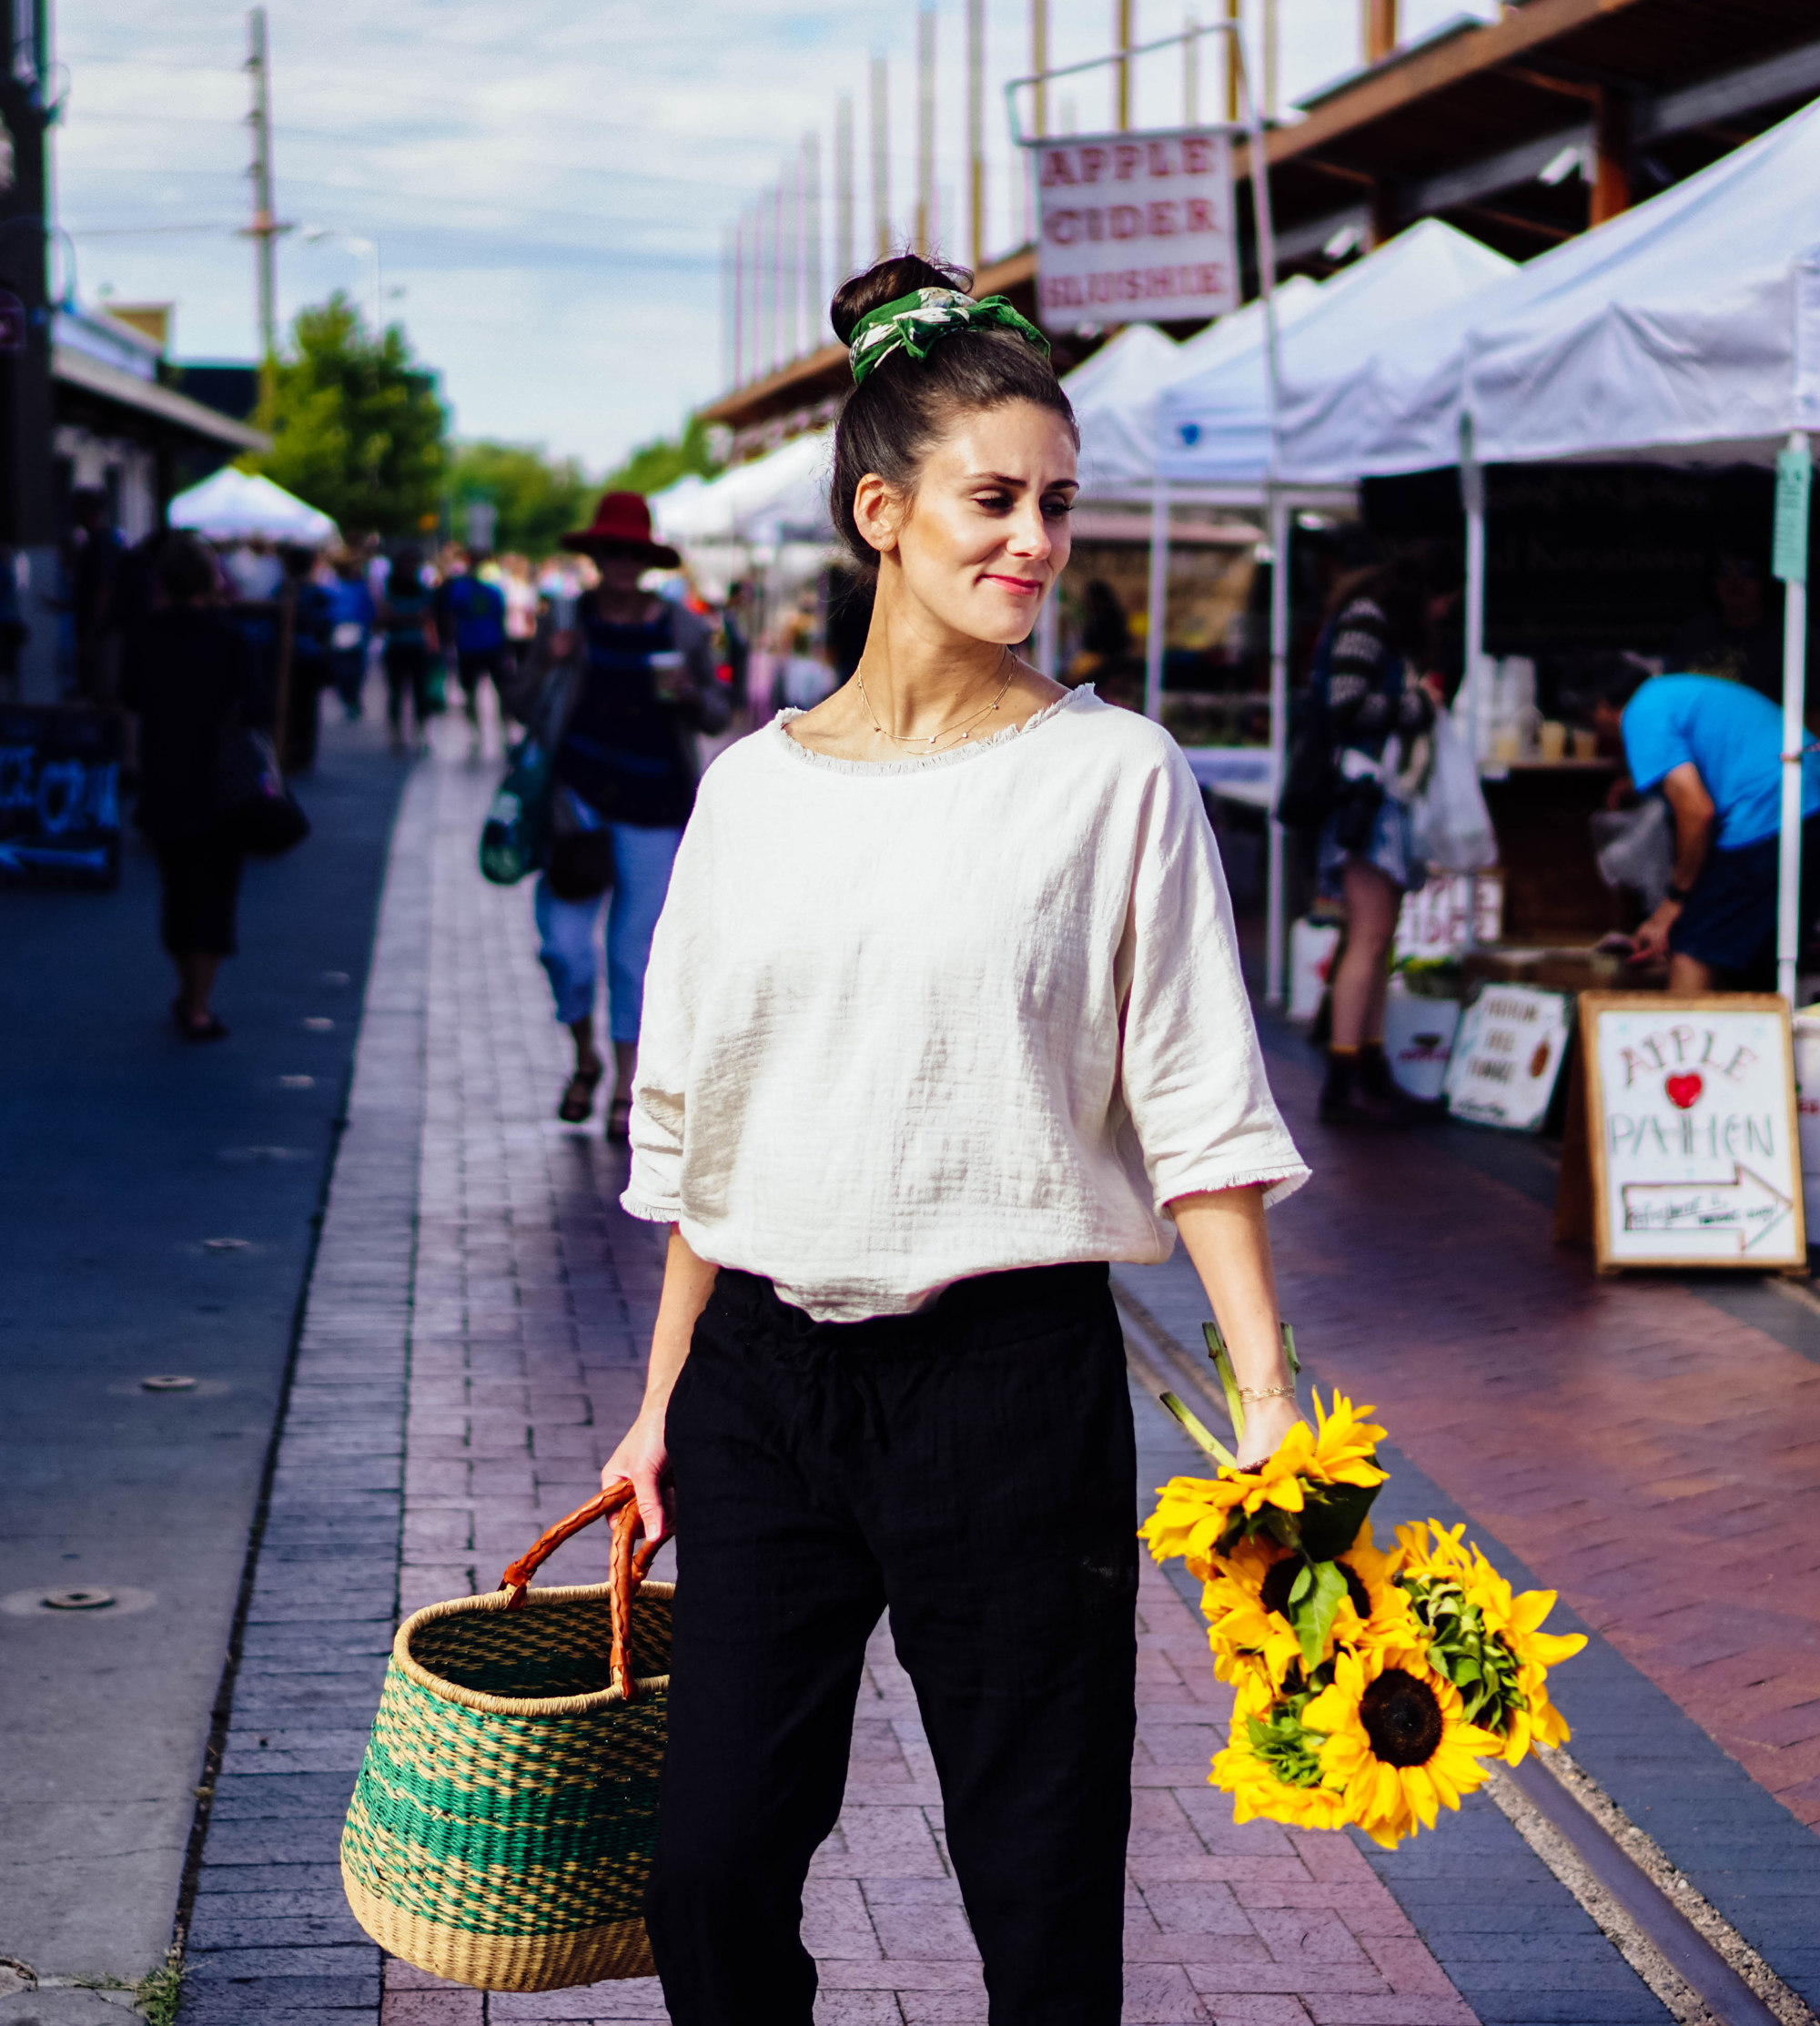 I'm exploring the Santa Fe Farmer's Market and the famous Cathedral Basilica of St. Francis of Assisi in some of my favorite maternity pieces from hatch collection over on The Dandy Liar, including this comfortable black jumper, and these extra forgiving paperbag waist pants and linen top.